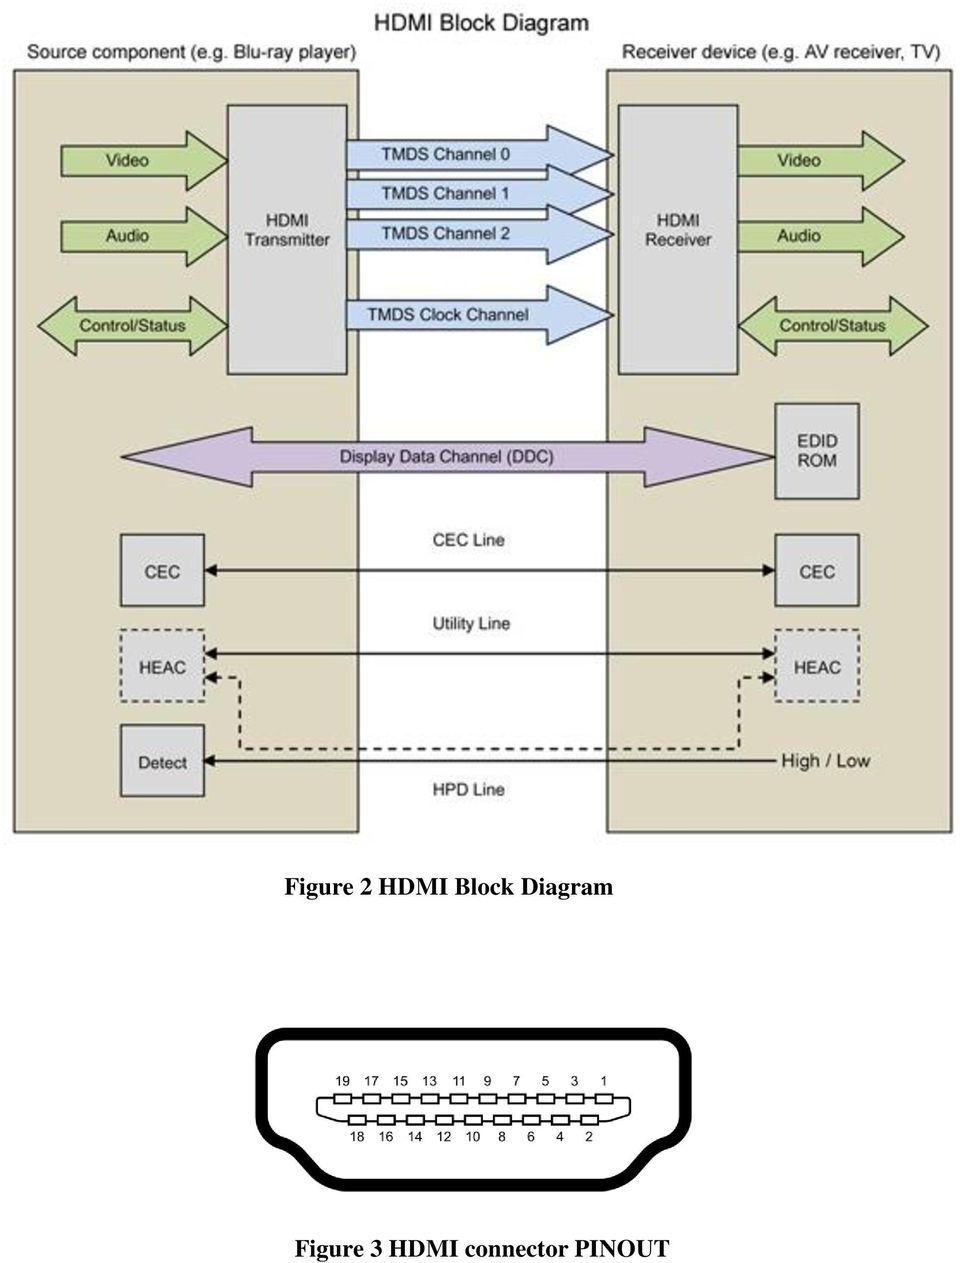 hight resolution of 5 table 2 hdmi pin assignment to facilitate the higher display resolution at 4k hdmi standard has evolved from hdmi 1 0 in 2002 to hdmi 2 0 in hdmi 2 0